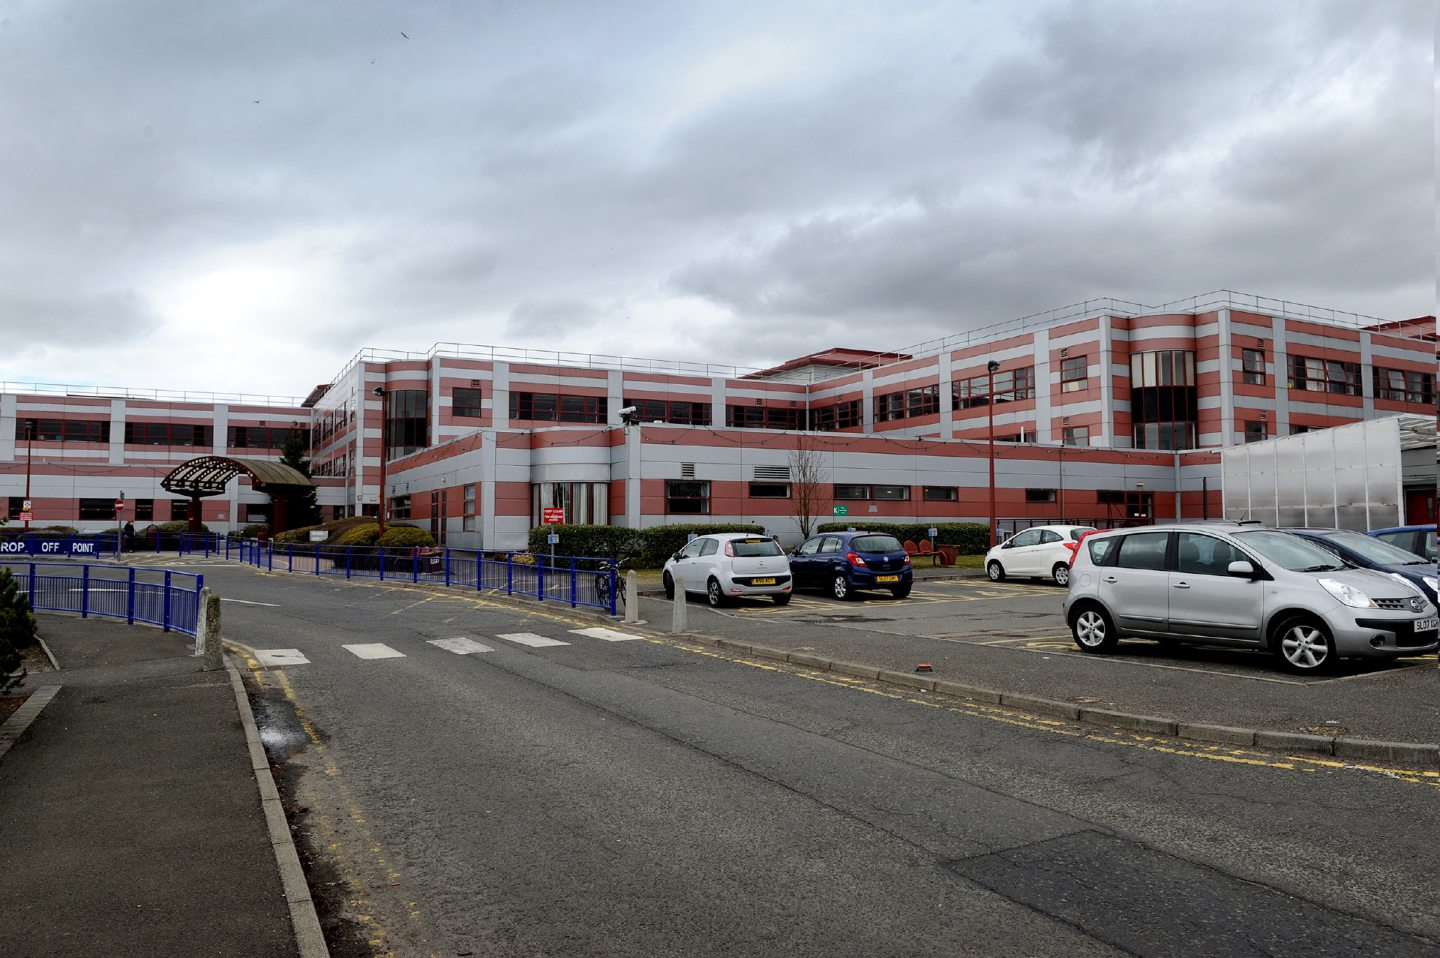 Changes have been made at Queen Margaret Hospital